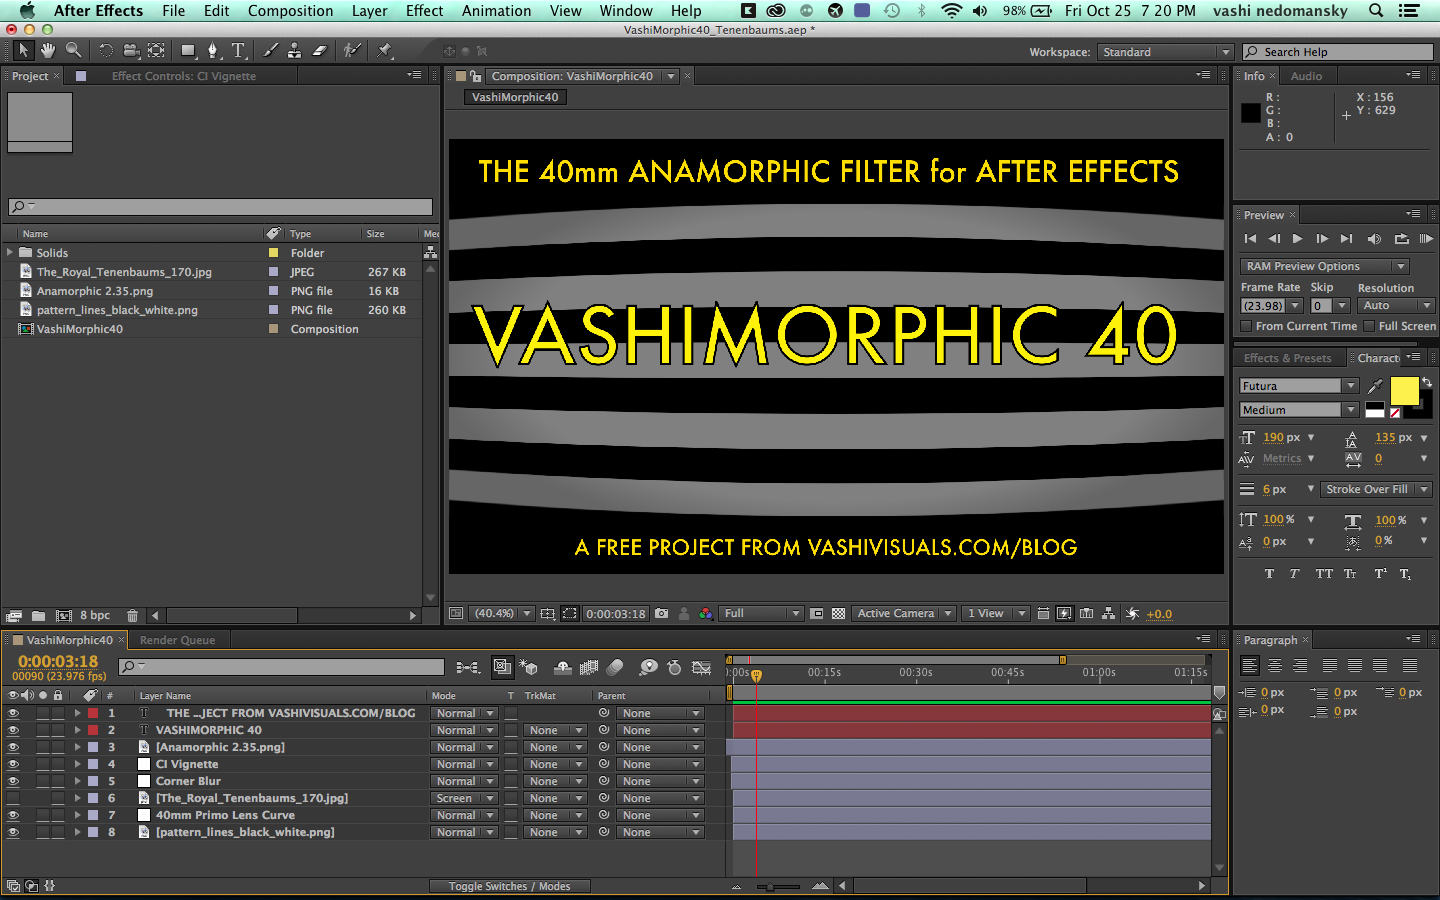 Full view in After Effects of VashiMorphic40